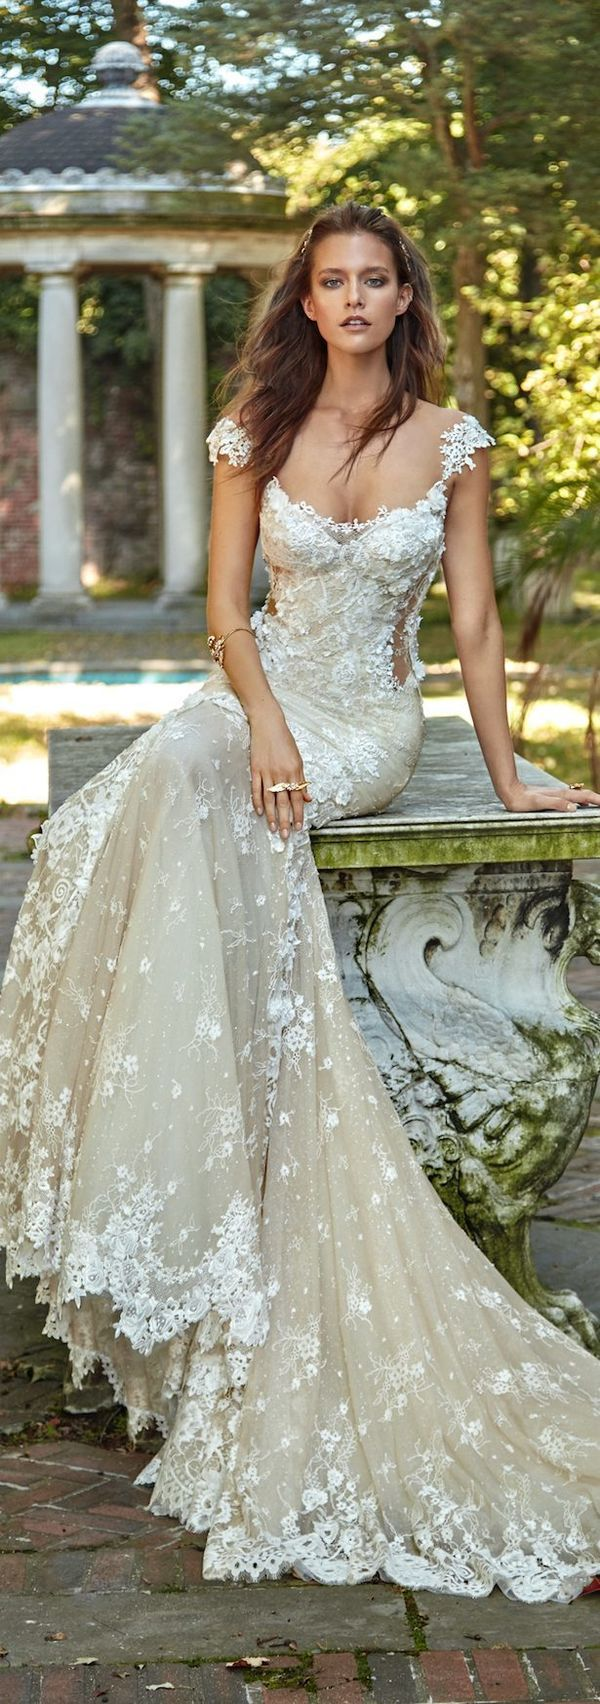 Glamorous Mermaid Wedding Dresses